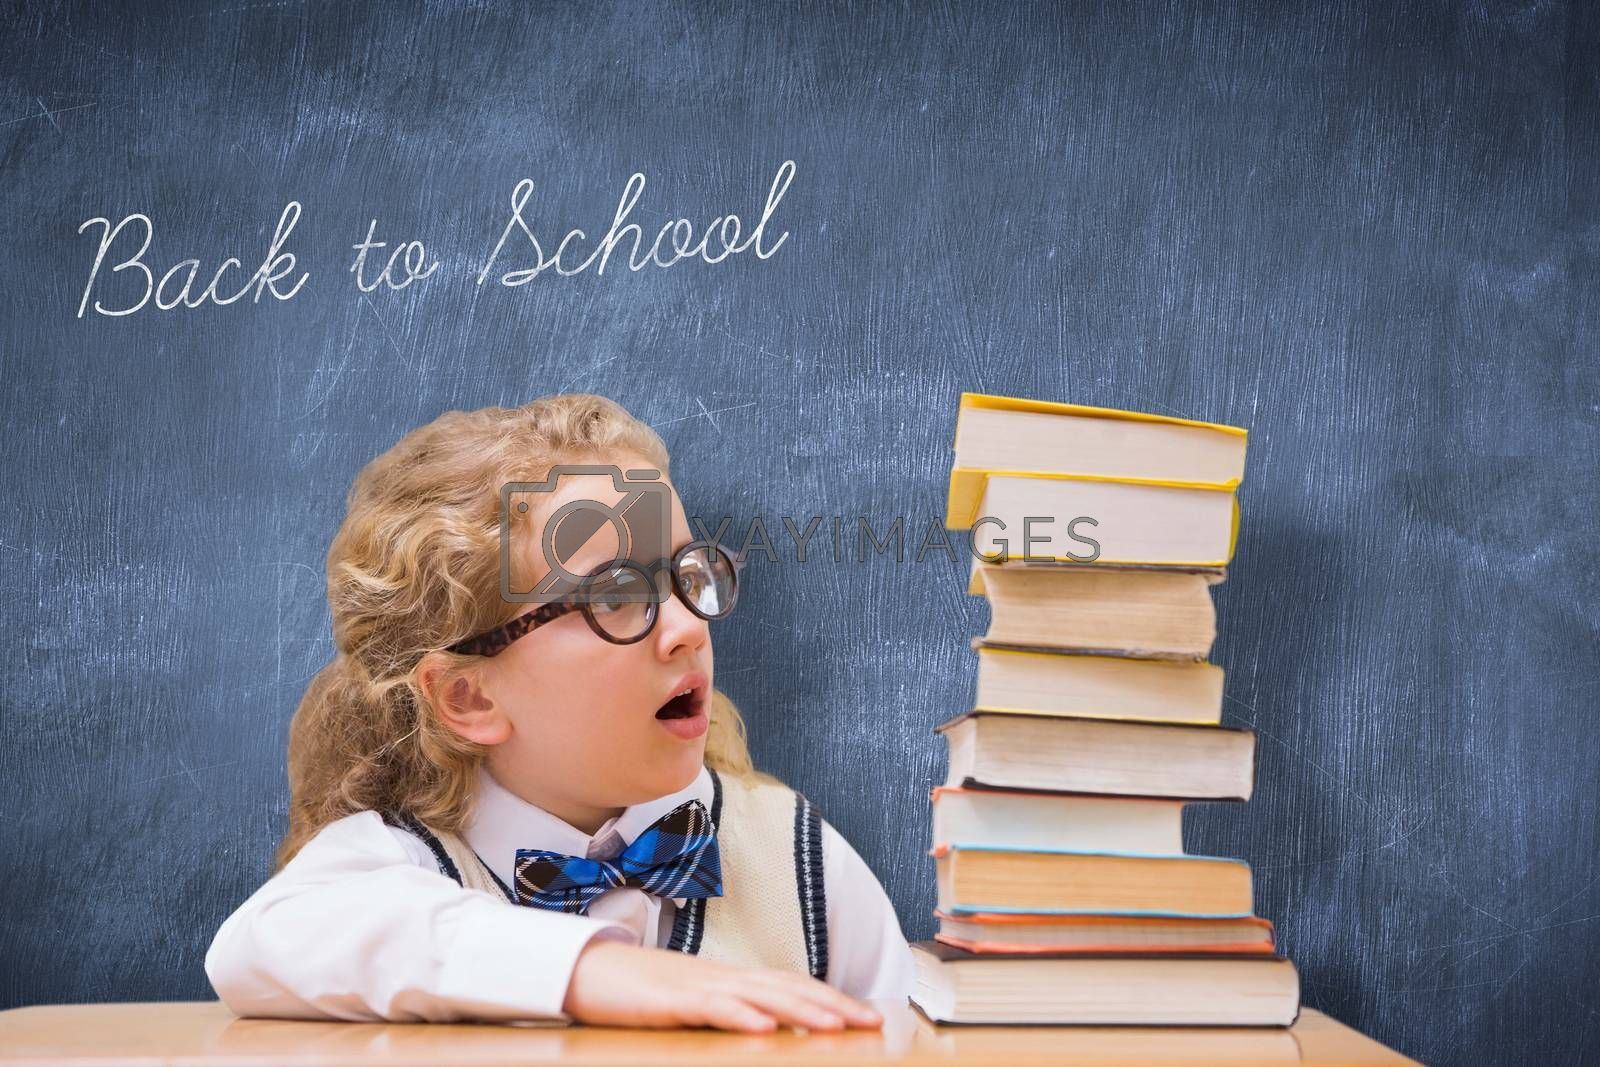 The word back to school and surprise pupil looking at books against blue chalkboard